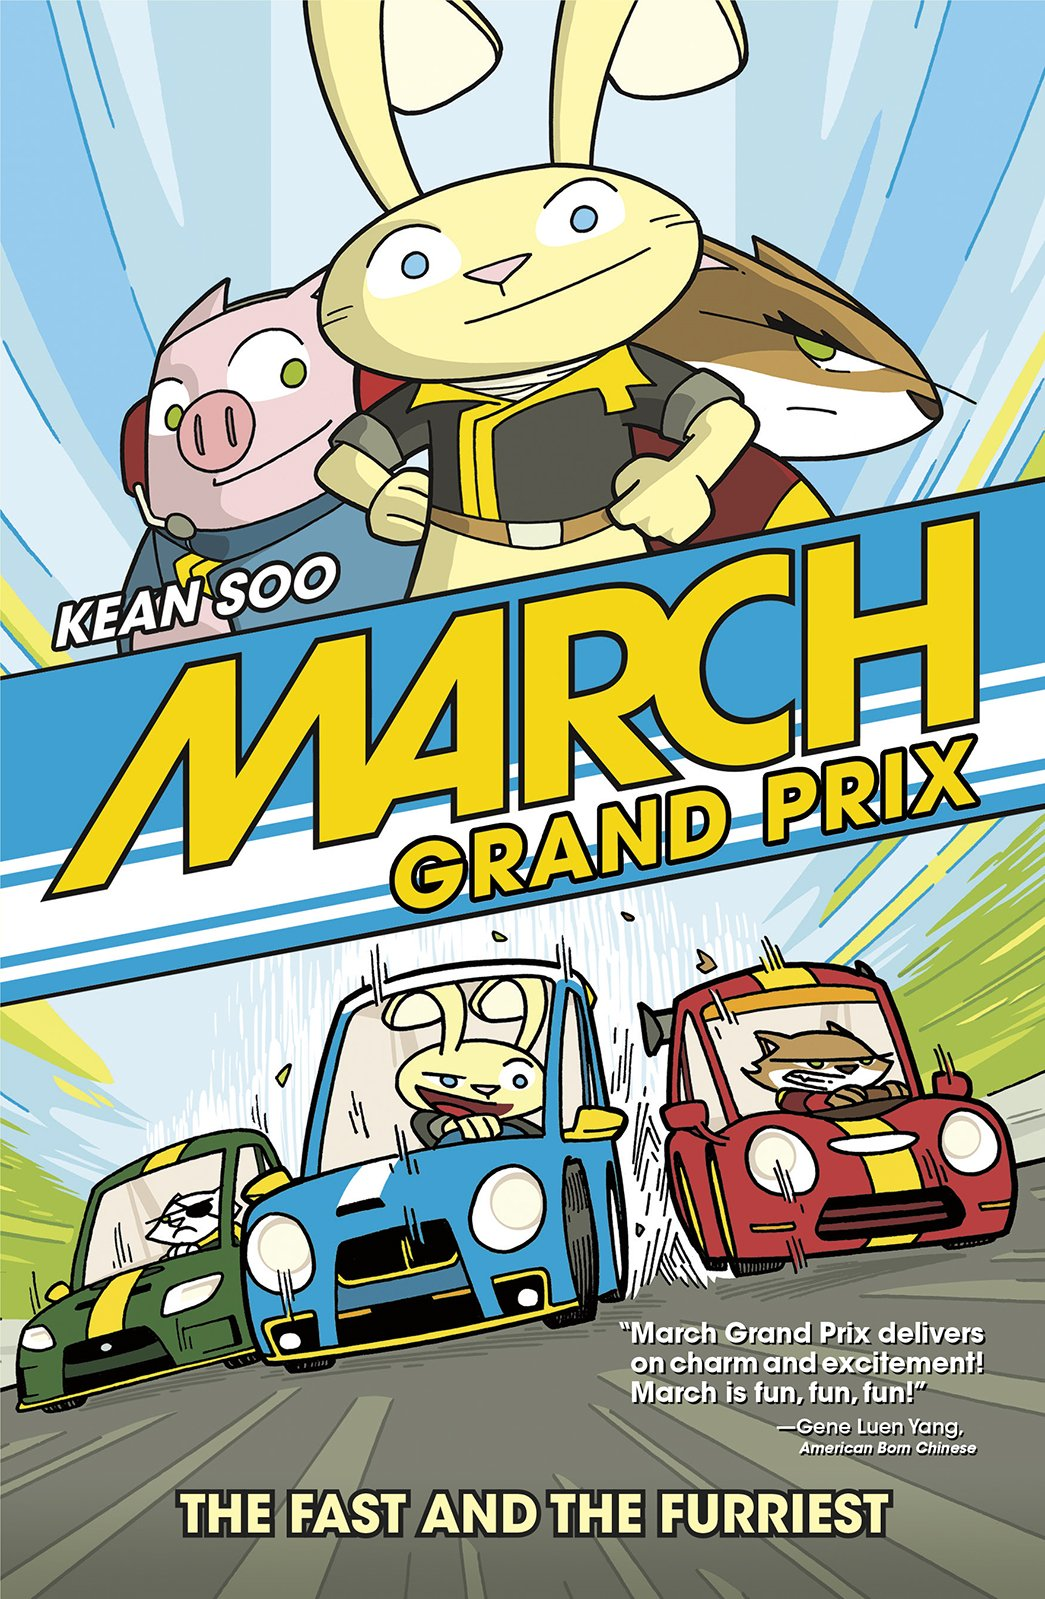 March Grand Prix: The Fast and the Furriest: Amazon.es: Kean Soo: Libros en idiomas extranjeros